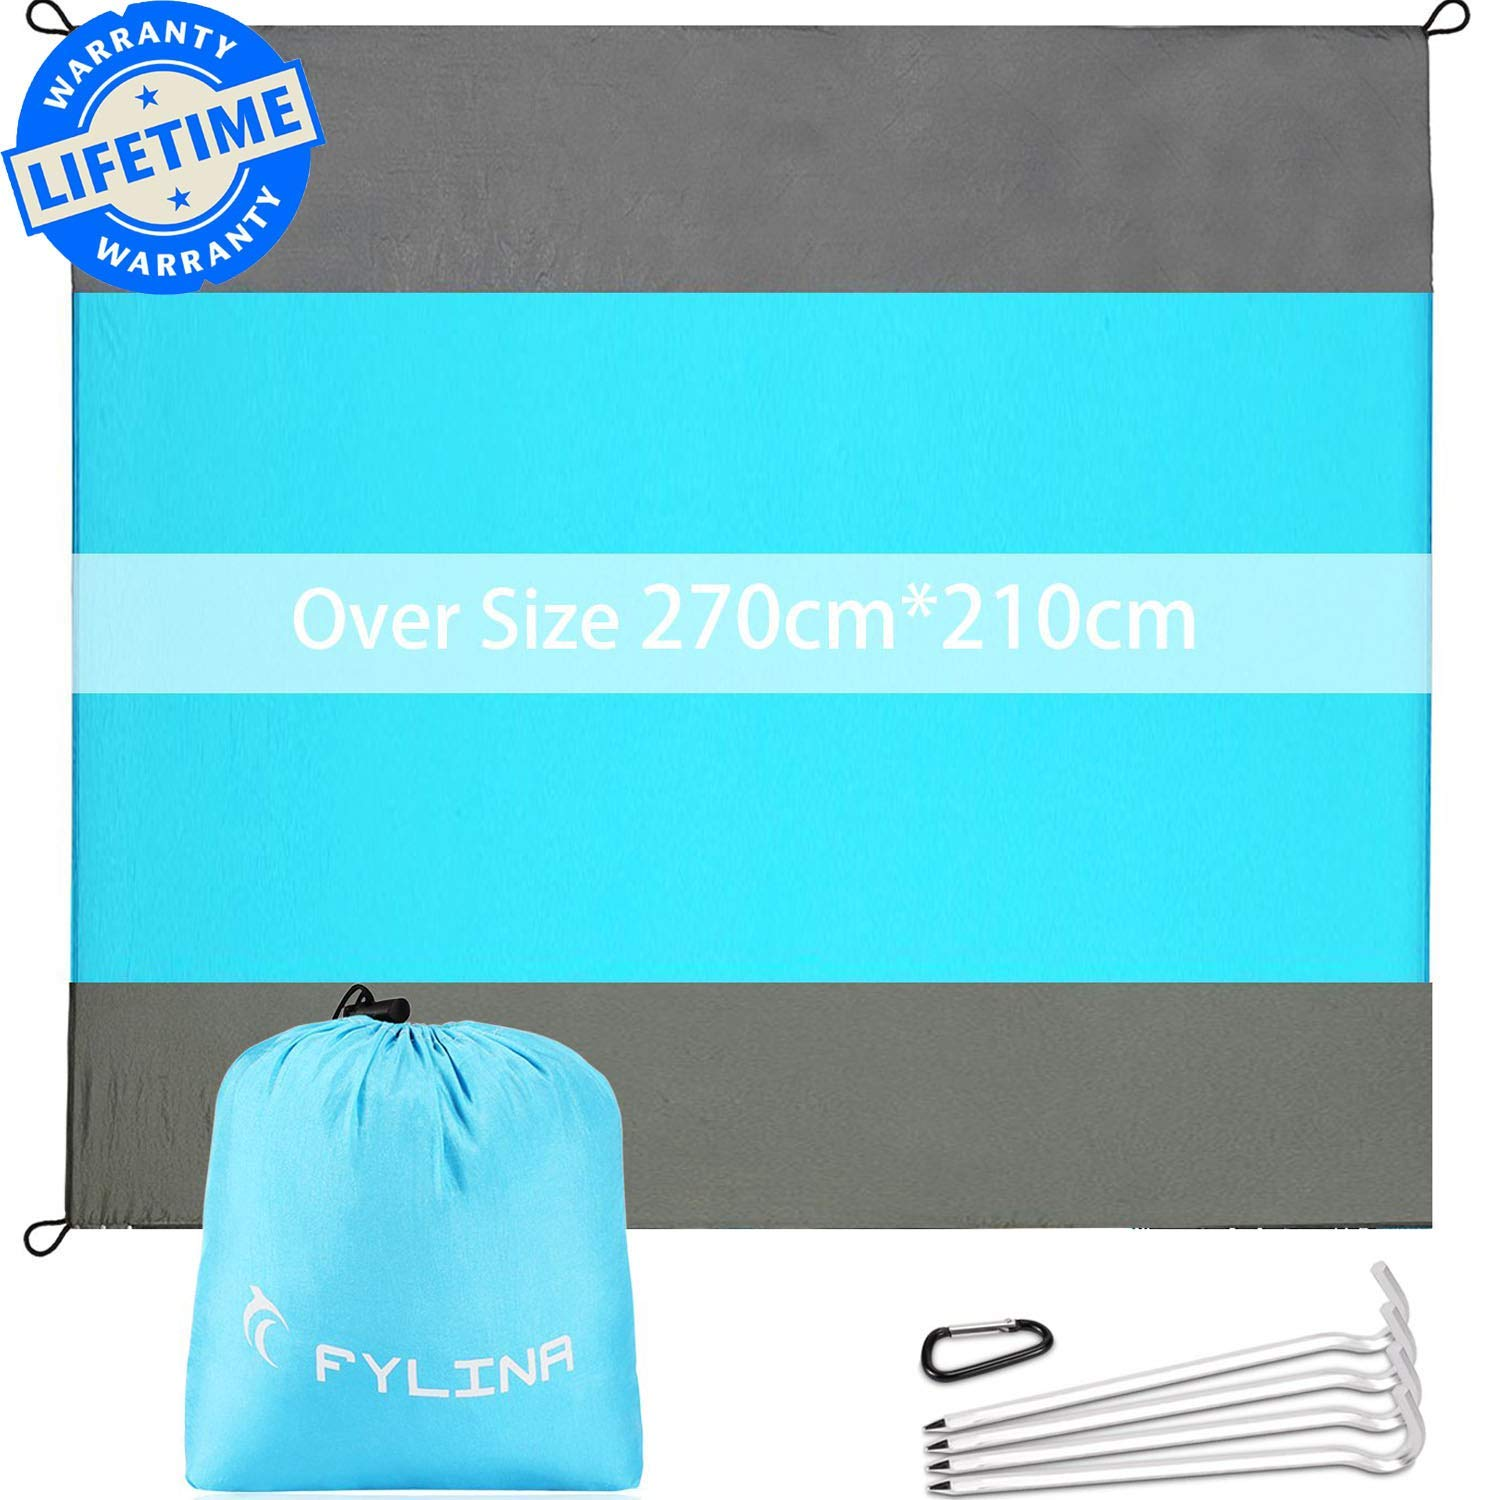 200 * 200 * 165cm for Outdoor Camping Fishing Picnic Easy to Carry Easy to Install Sunshade Beach Umbrella UPF50+ Protection Anti UV Sunscreen METTE Beach Tent with Sand Anchor